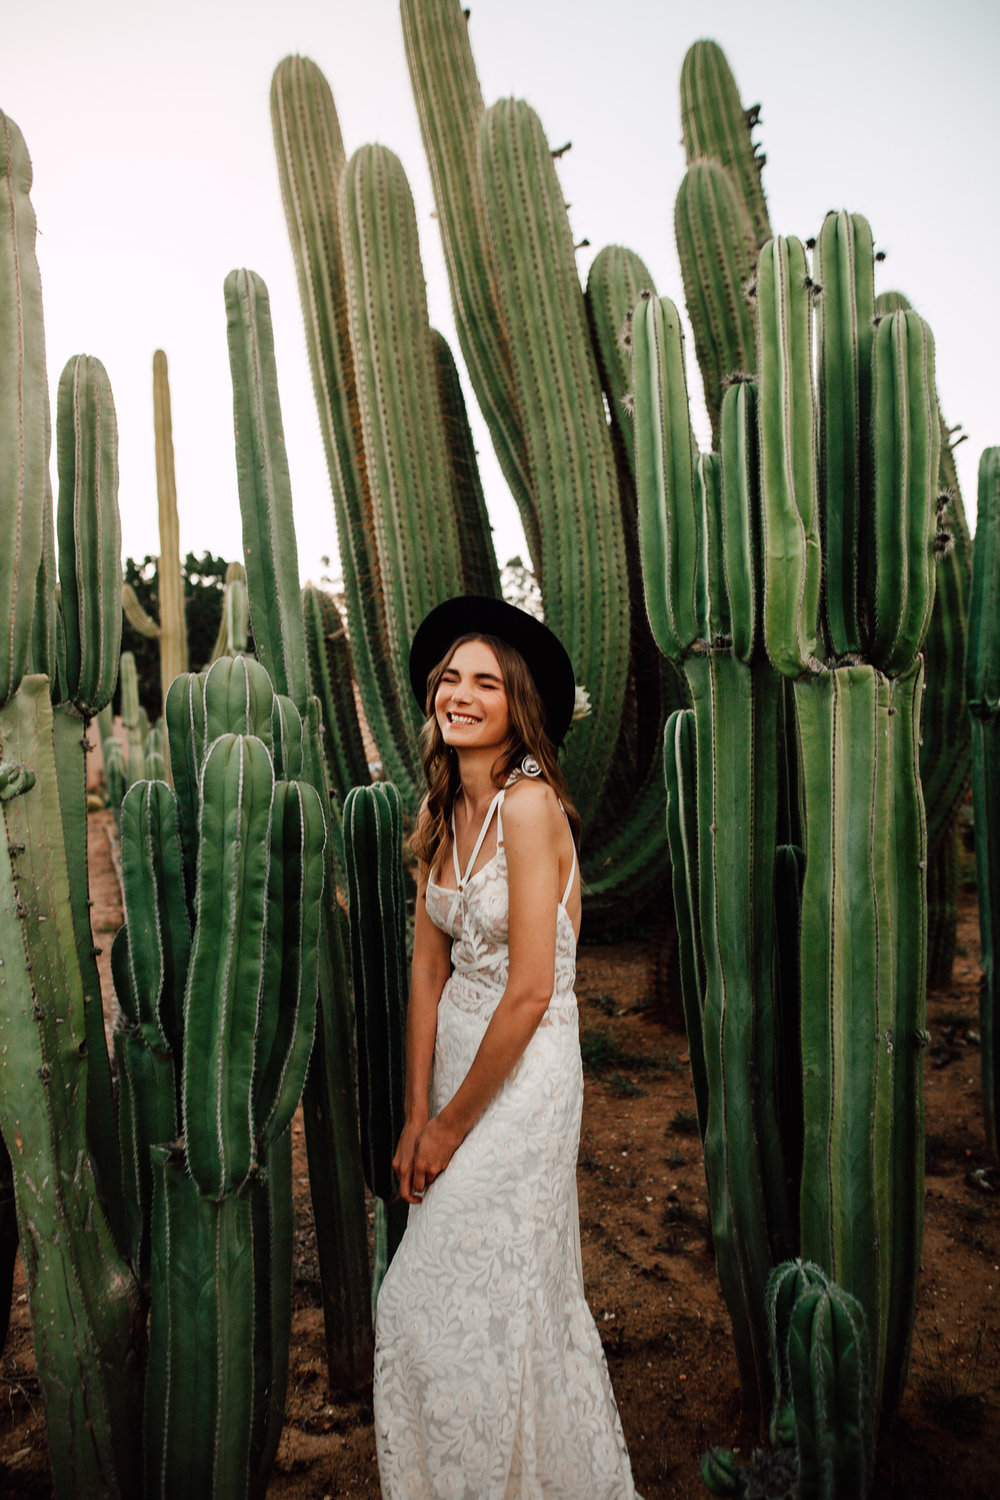 Cape-Town-Pia-Anna-Christian-Wedding-Photography-South-Africa-Bride-Cactus-26.jpg